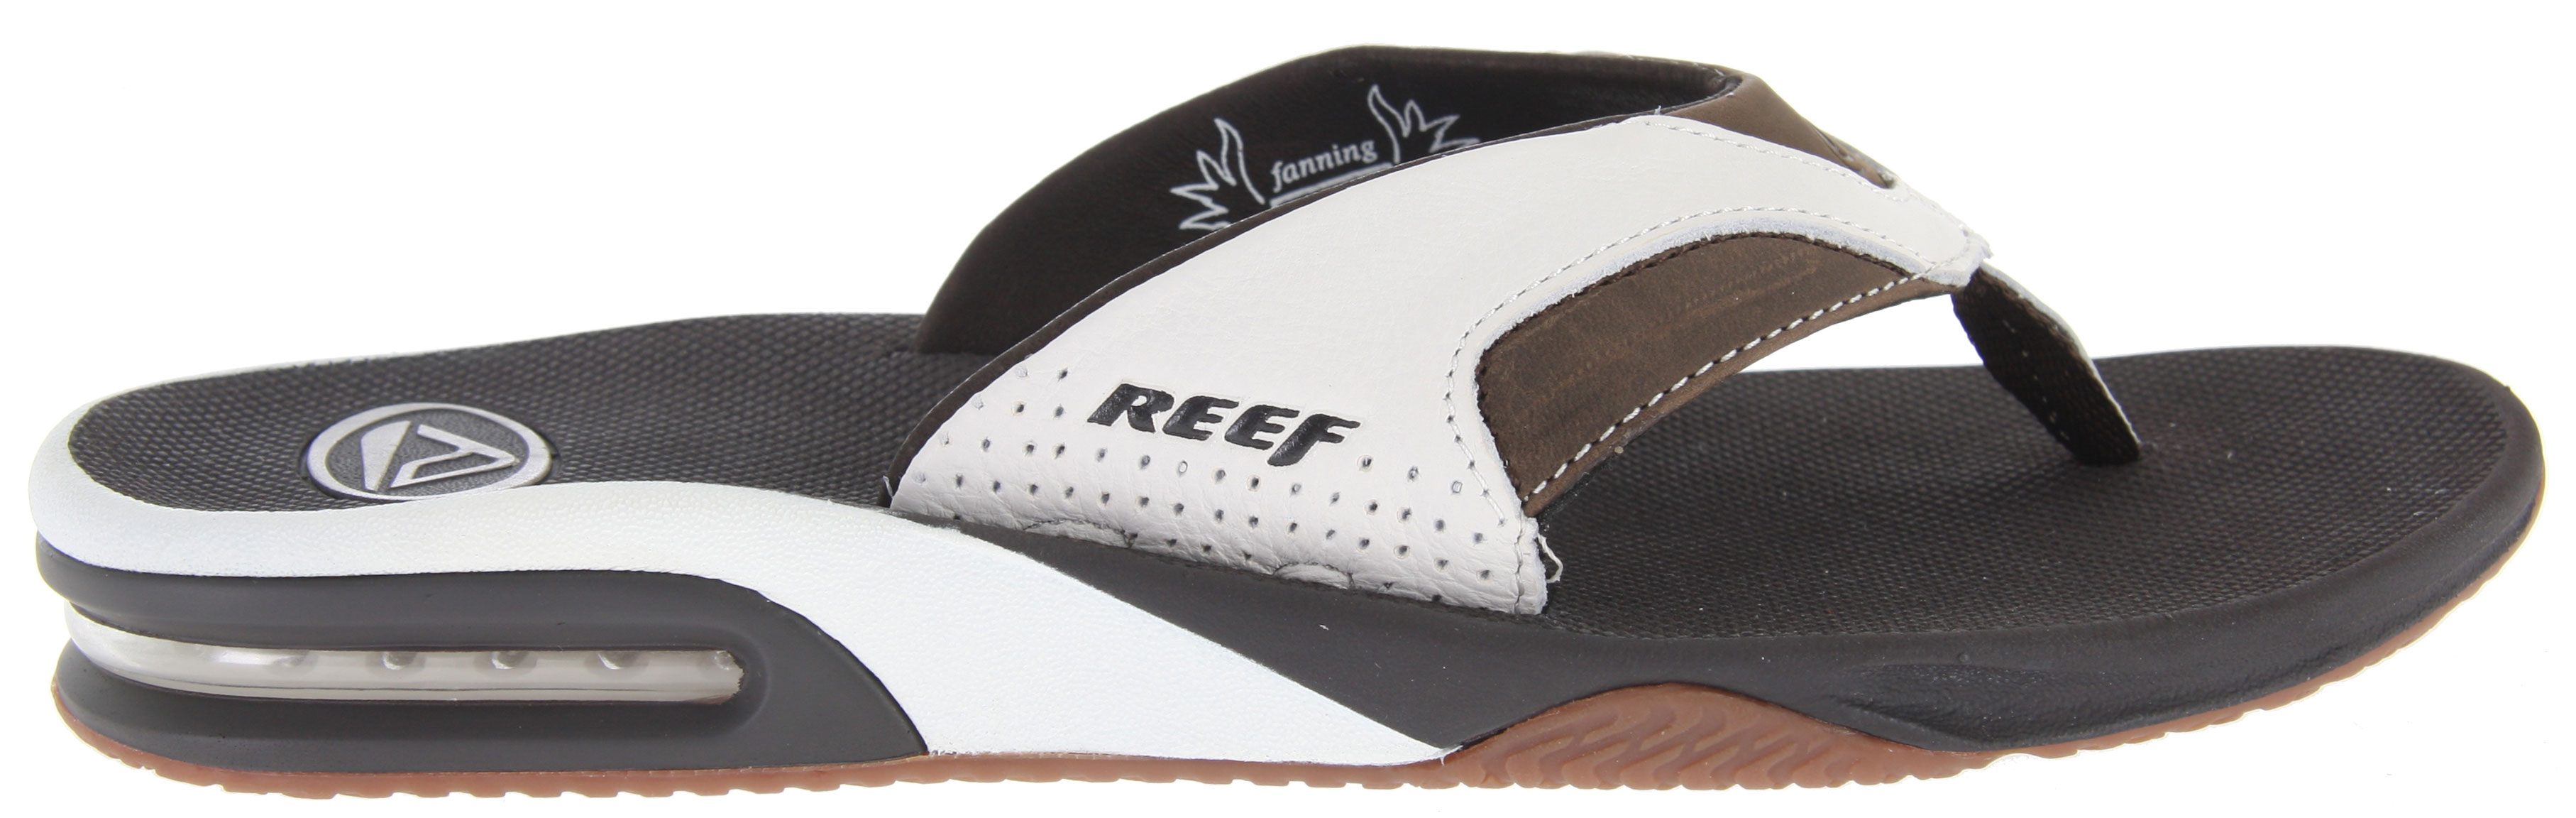 "Surf These Reef leather fanning sandals provide the freedom of a regular flip-flop with the added bonus of an expertly contoured foot bed for excellent arch support and unparalleled comfort. What's more, an airbag in the heel brings new meaning to the term walking on air. The rubber sole takes the worry out of having enough traction when on slippery surfaces, and the expertly crafted leather upper is the perfect finishing touch for every summer outdoor enthusiast.Key Features of the Reef Leather Fanning Sandals: High quality full grain leather upper Comfortable glove leather lining Contoured compression molded Eva Footbed with anatomical arch support Full 360degrees heel airbag enclosed in soft polyurethane Church key to open your ""soda"" bottle Reef icon herringbone rubber outsole - $51.95"